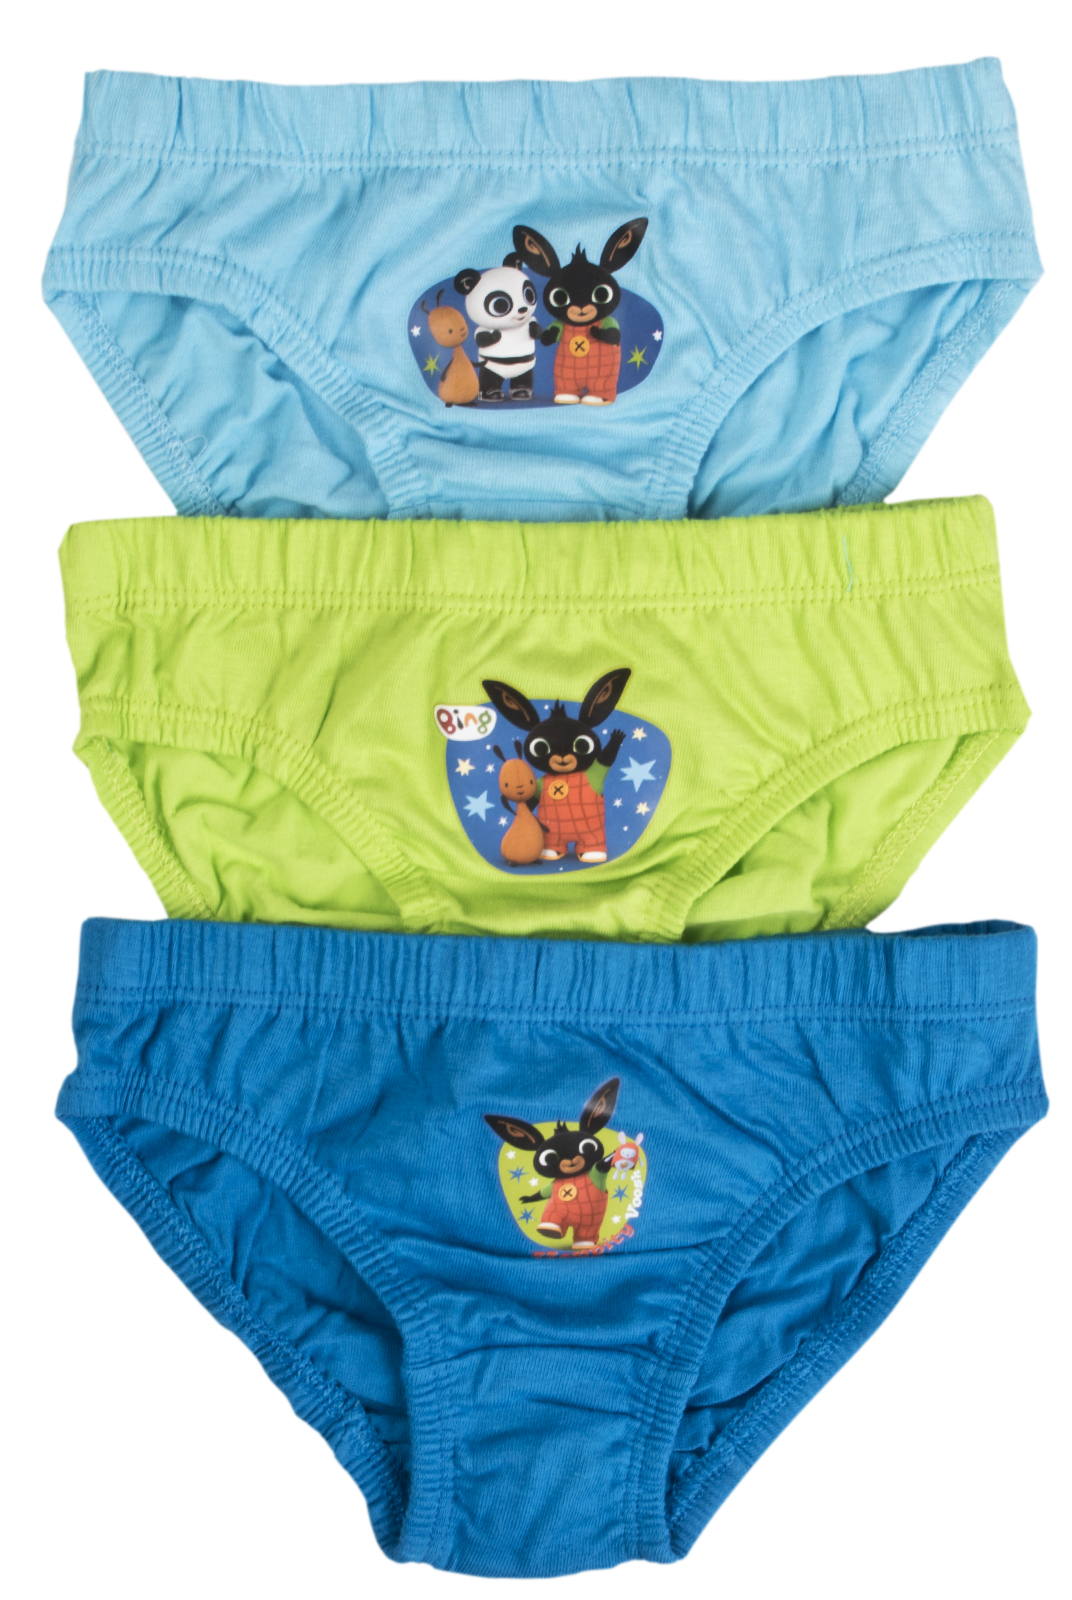 Good Prices bright in luster official price Details about Bing Bunny Underpants 3 Pack Boys Briefs Multipack 3 Pairs  Underwear Kids Pants